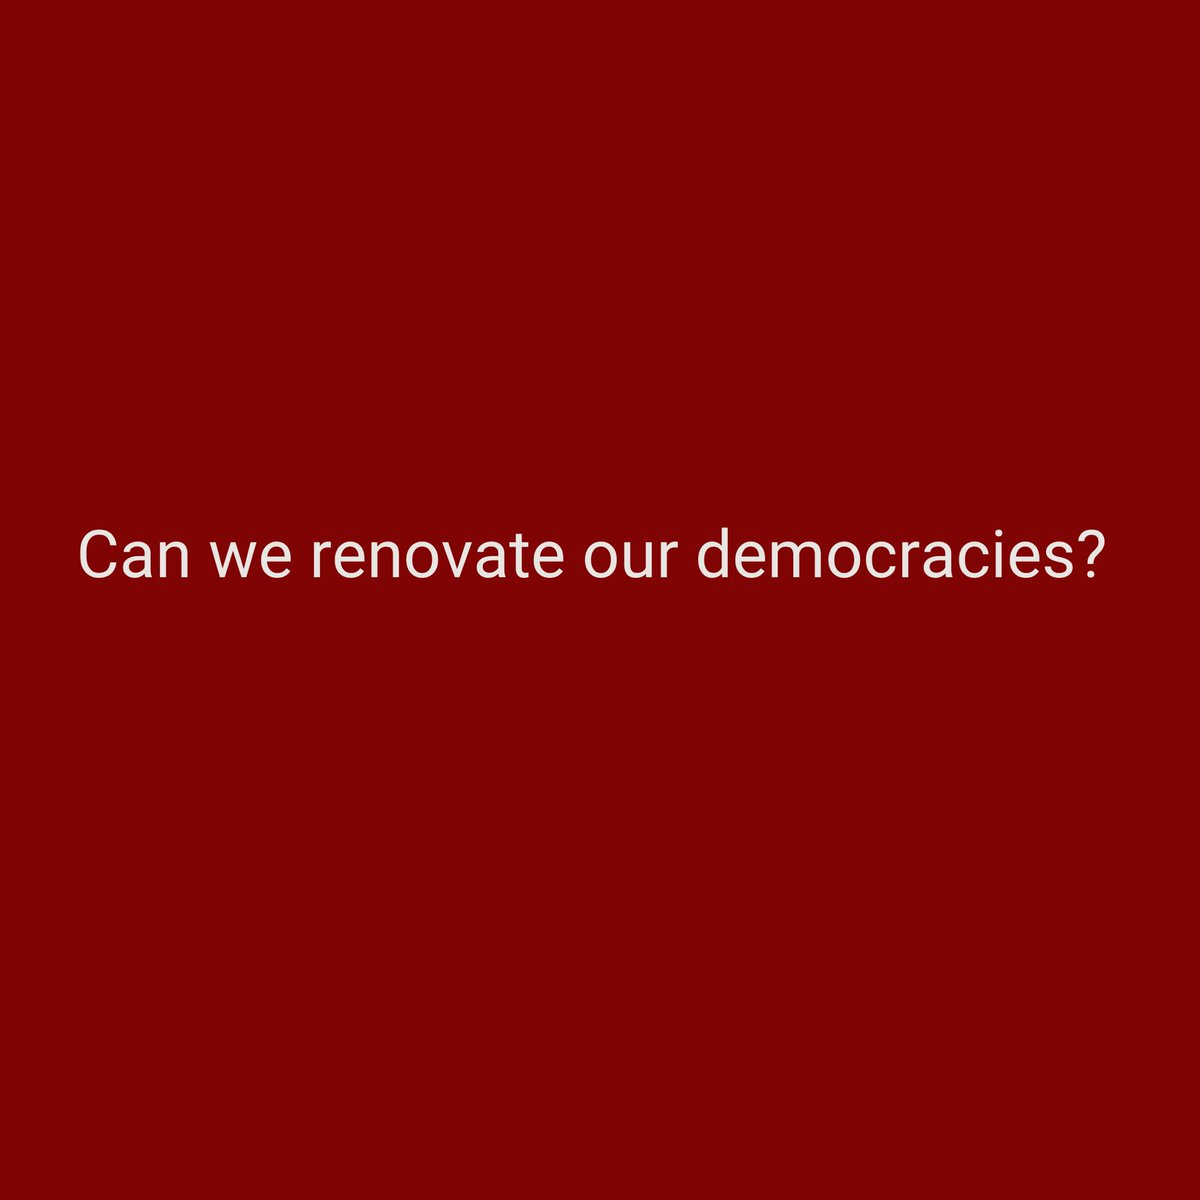 (All) the biggest questions stand naked before us: Part 3. #thoughtseries  #FutureOfDemocracy https://t.co/e3EHG7taHz https://t.co/wWbWjHA3r9